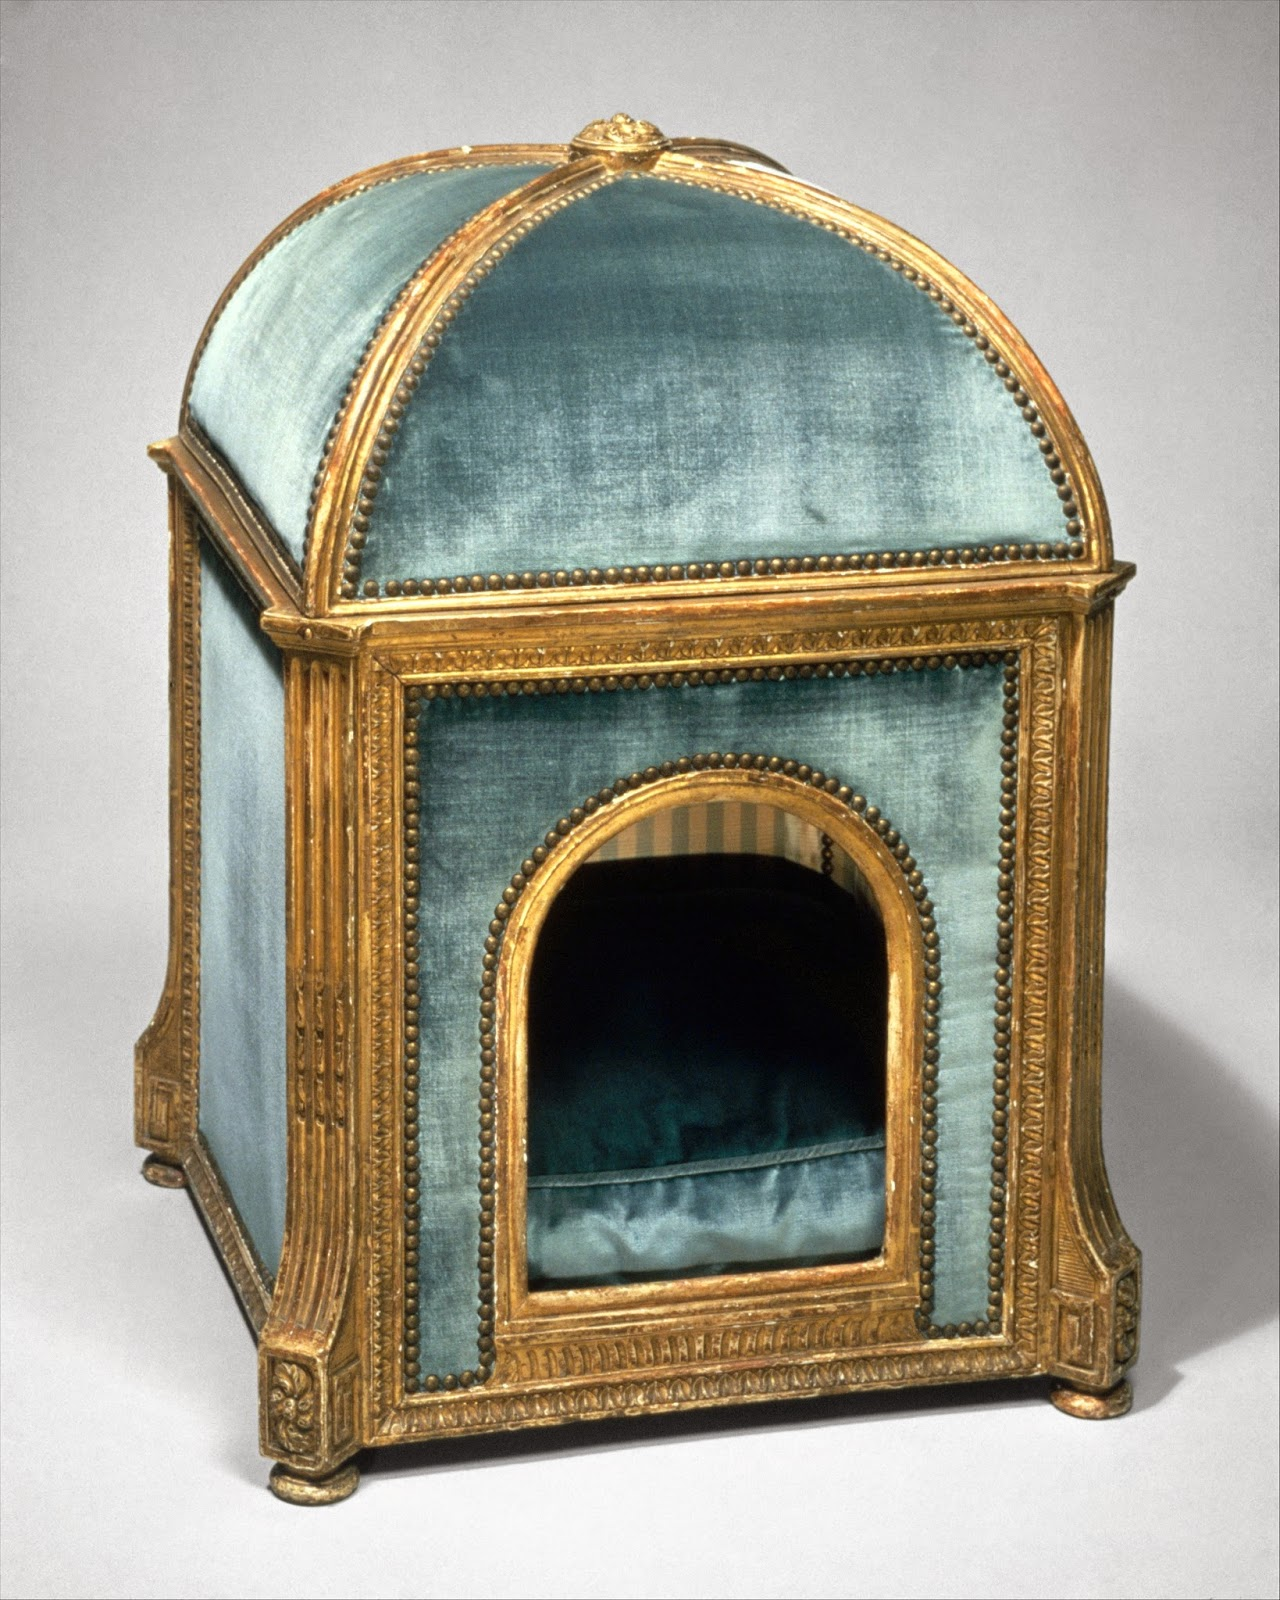 a blue velvet dog house has gold trim from the 18th century